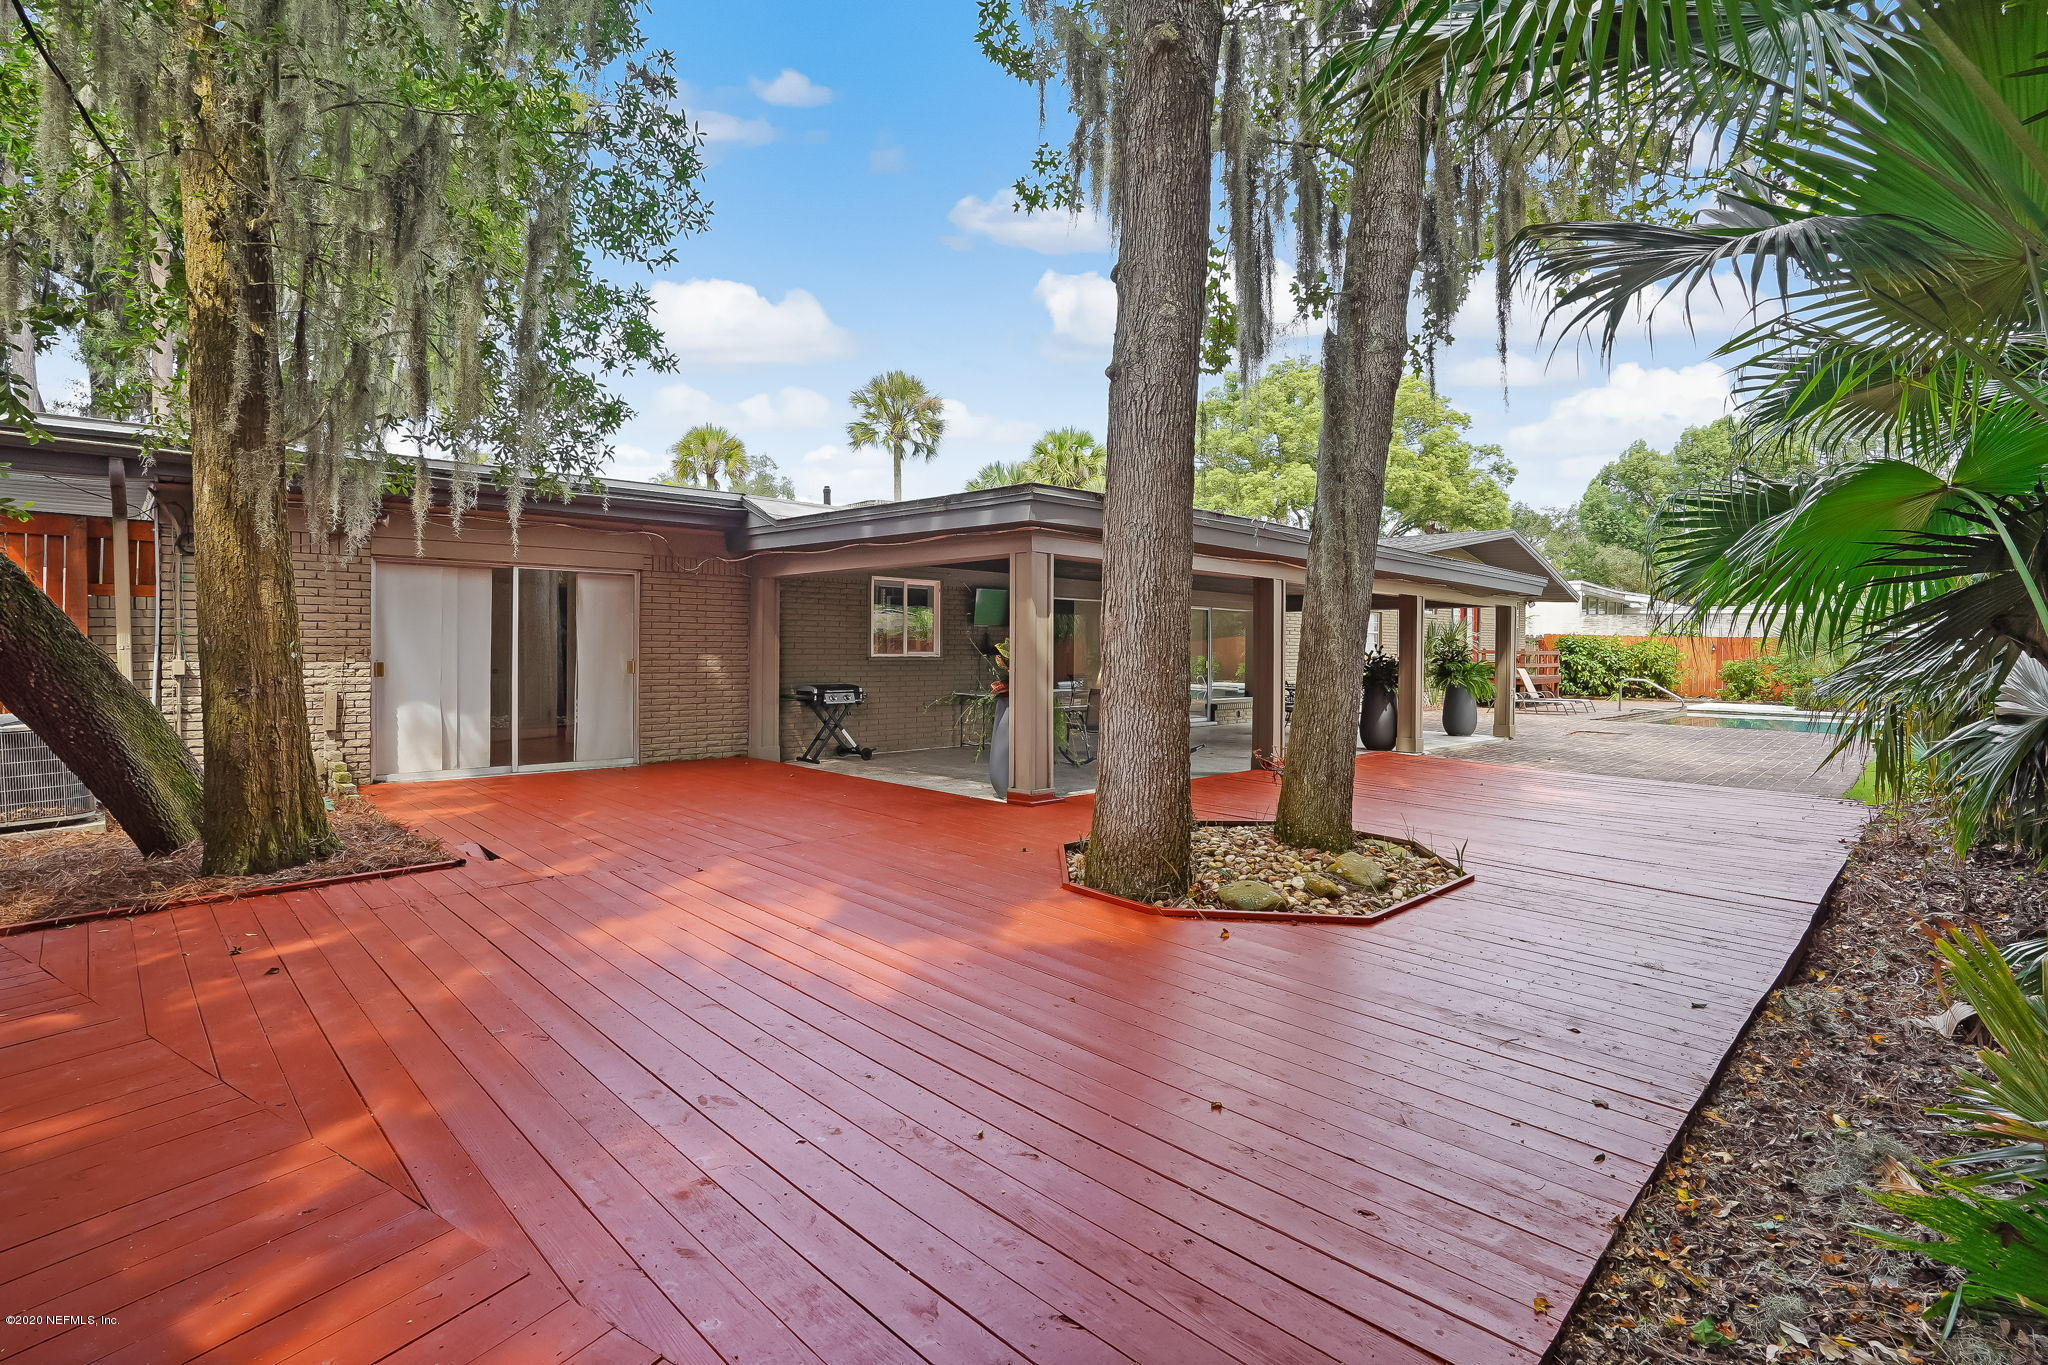 2314 SMULLIAN, JACKSONVILLE, FLORIDA 32217, 5 Bedrooms Bedrooms, ,4 BathroomsBathrooms,Residential,For sale,SMULLIAN,1077119